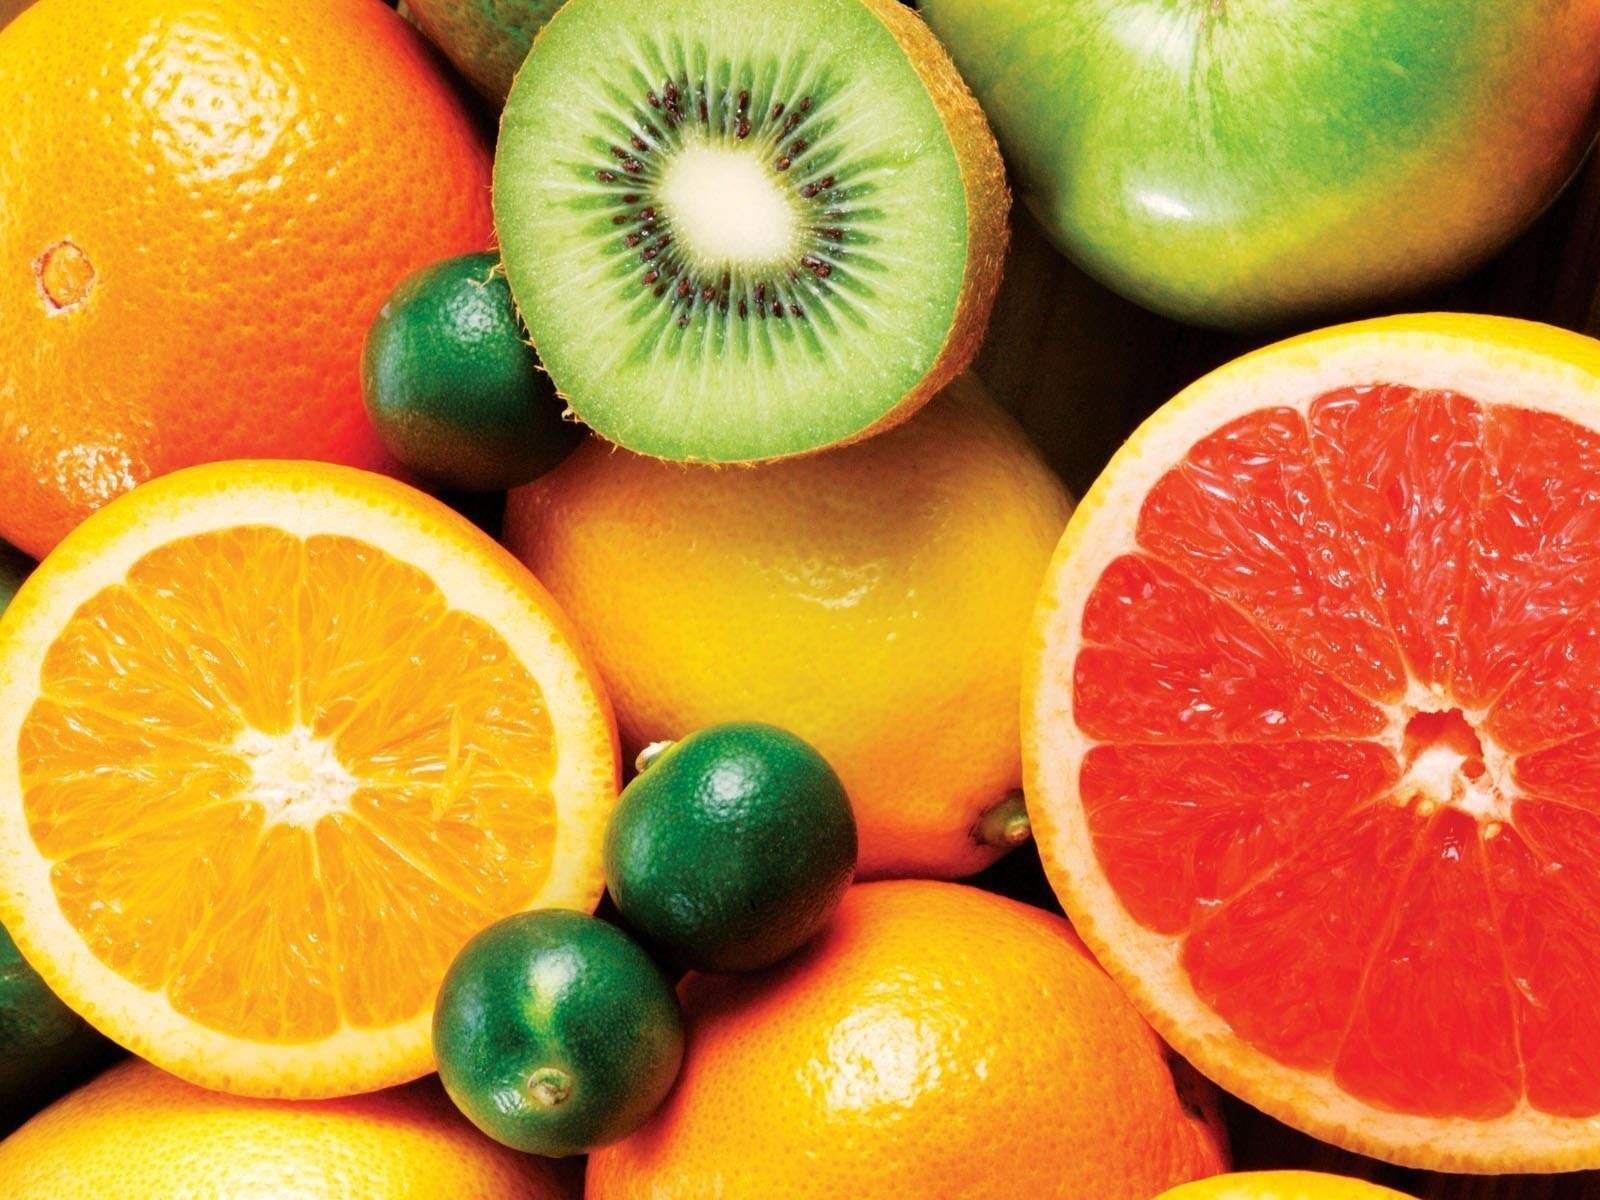 Fruits Widescreen HD Wallpapers 1600x1022 HD Widescreen Desktop 1600x1200